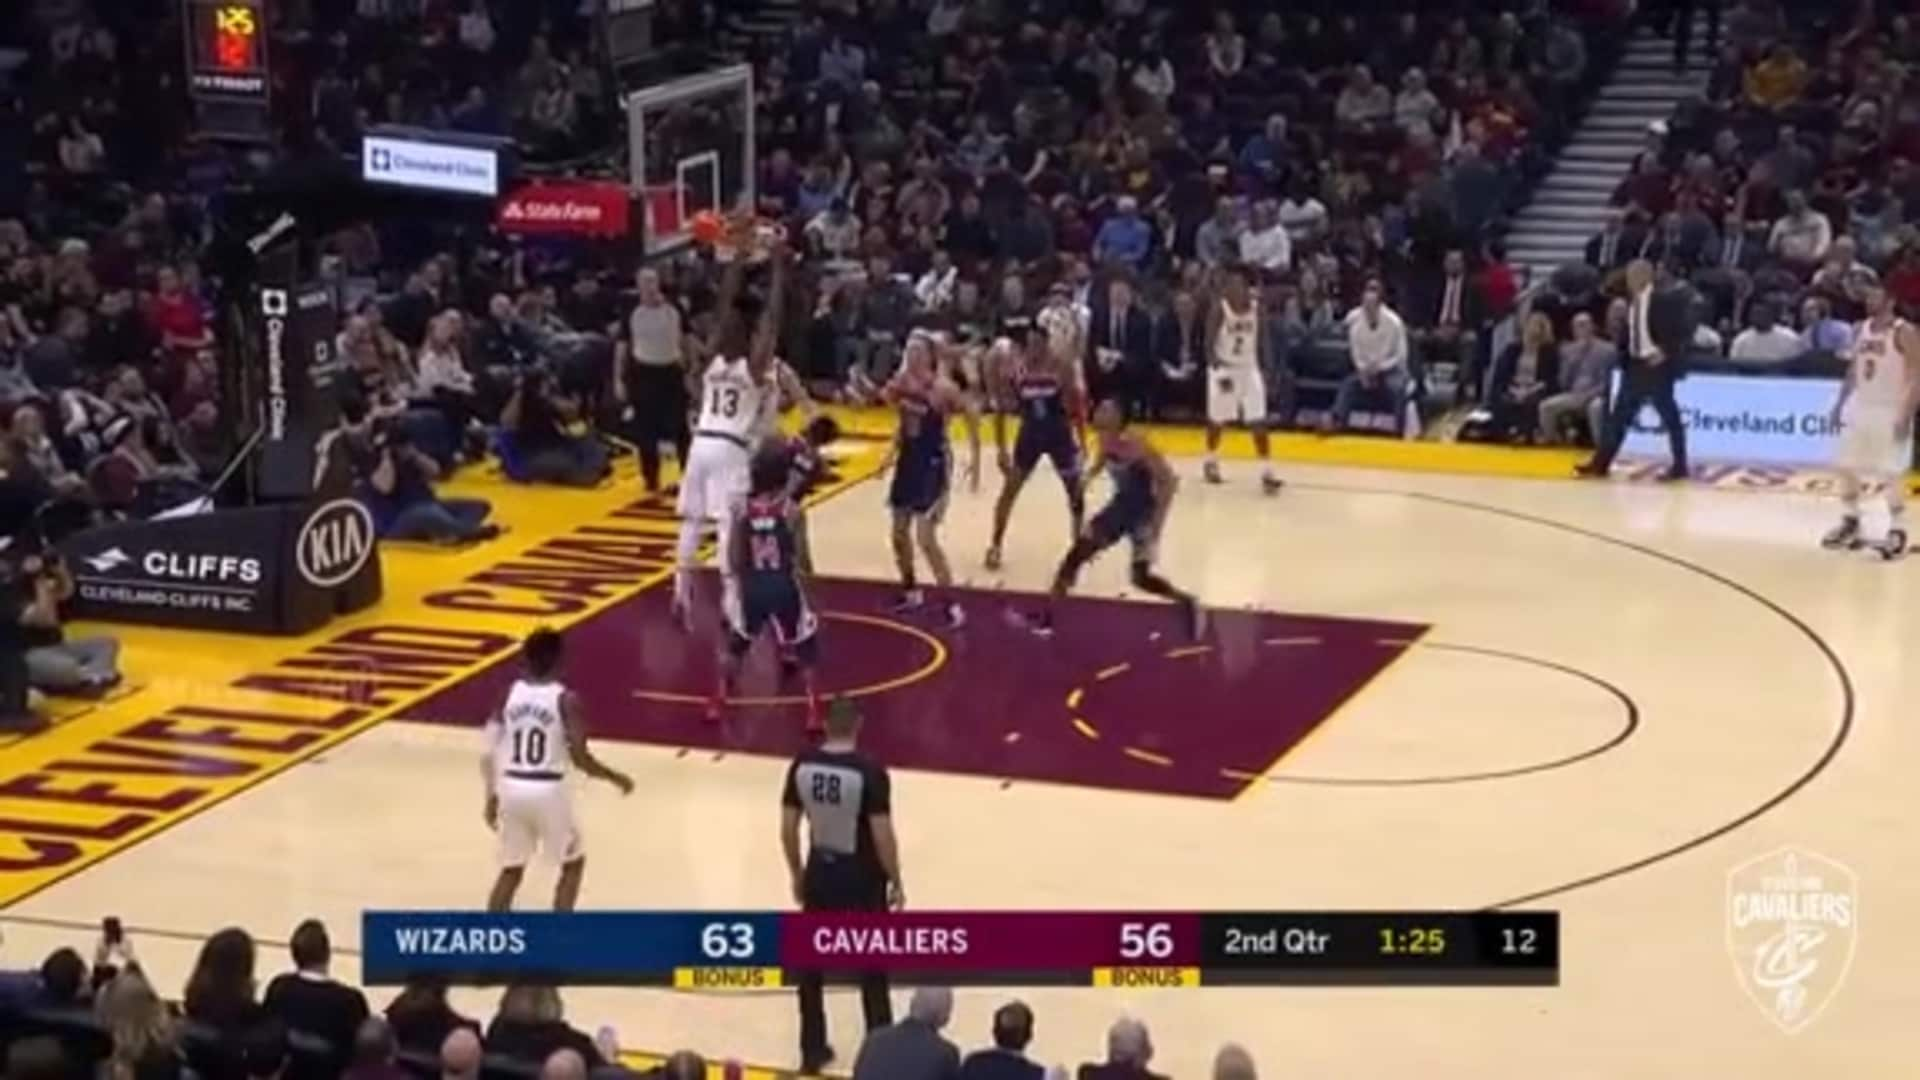 Cedi Finds Tristan for the Alley-Oop